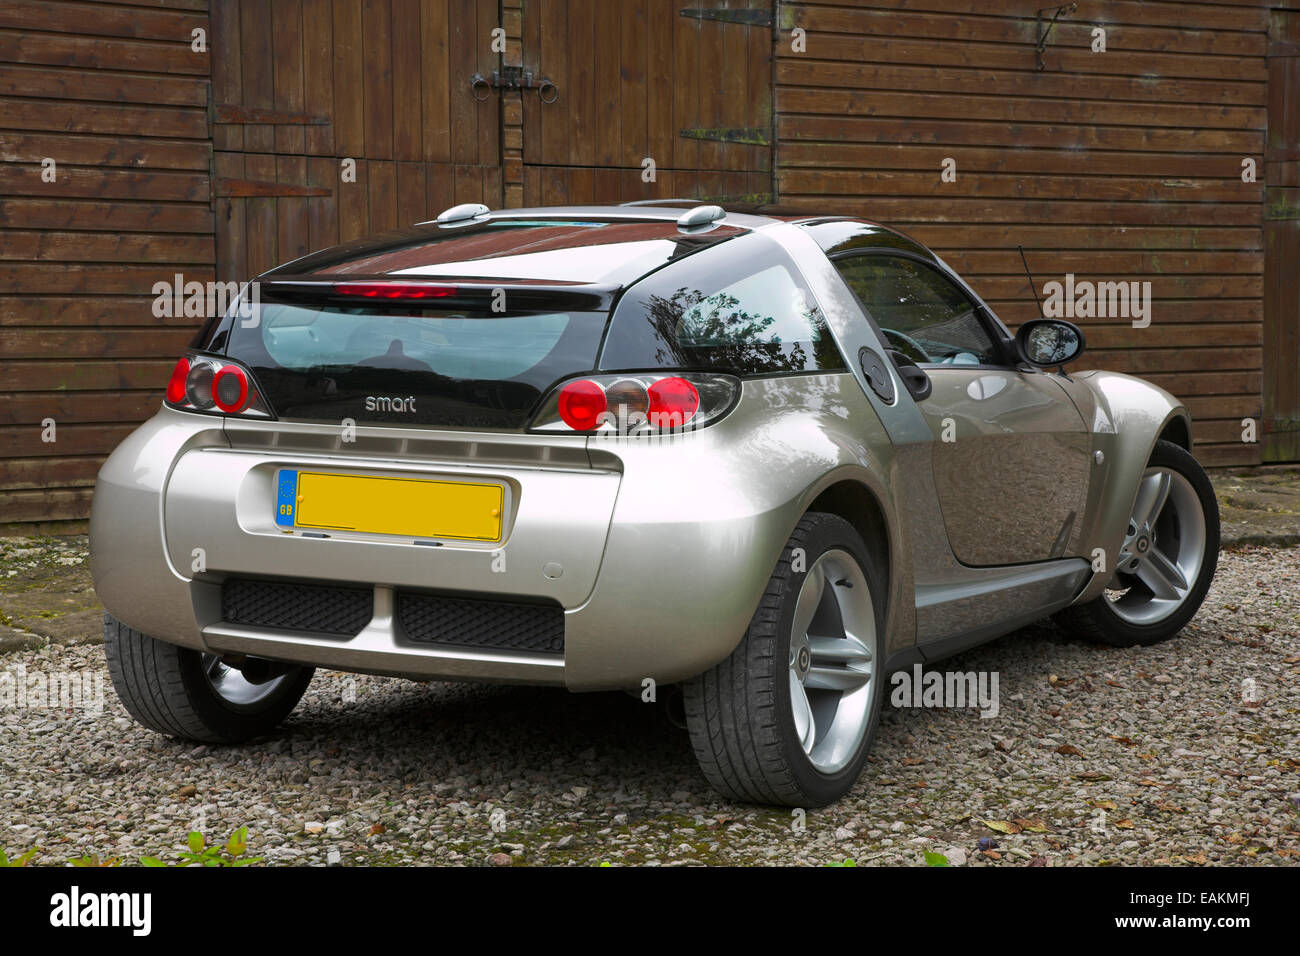 smart roadster coupe - photo #34